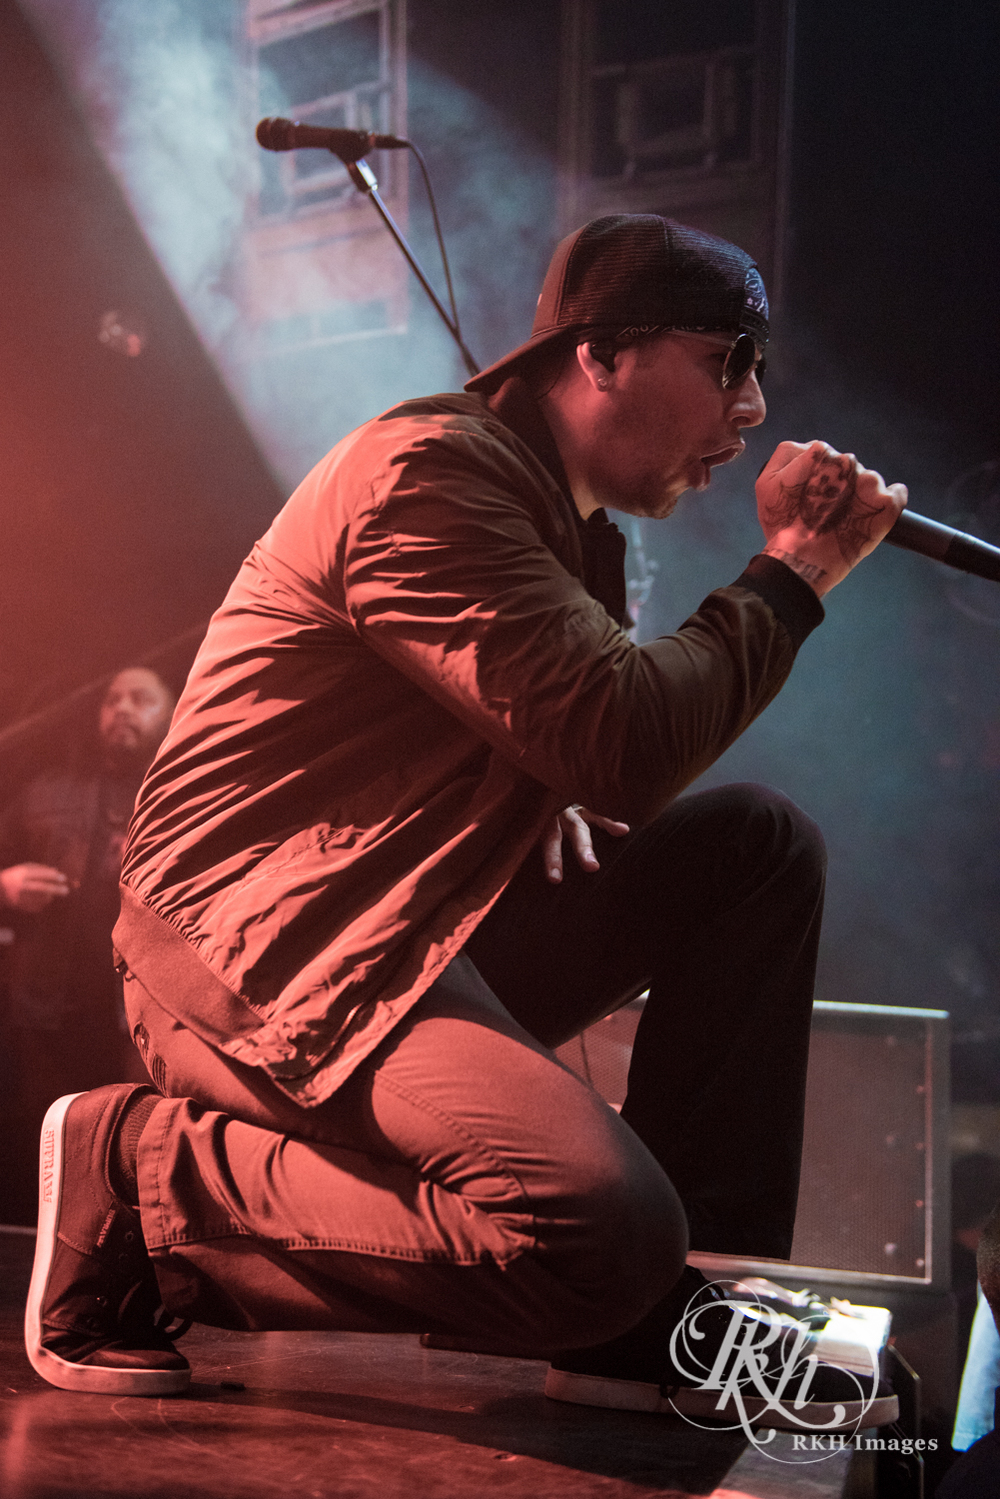 a7x rkh images (27 of 52).jpg